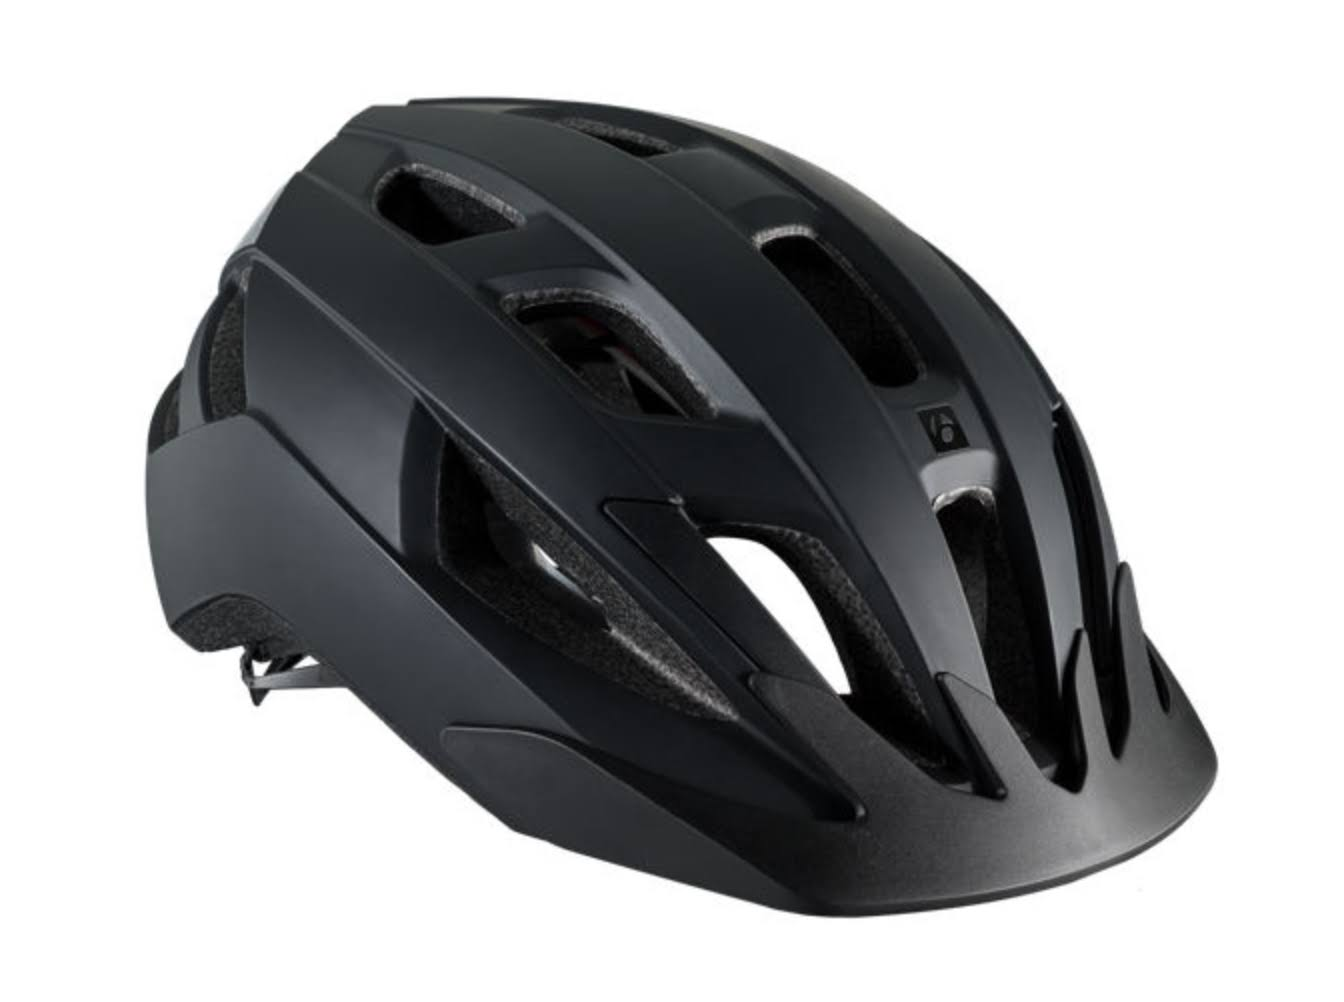 Bontrager Solstice MIPS Bike Helmet - Black - Small/Medium